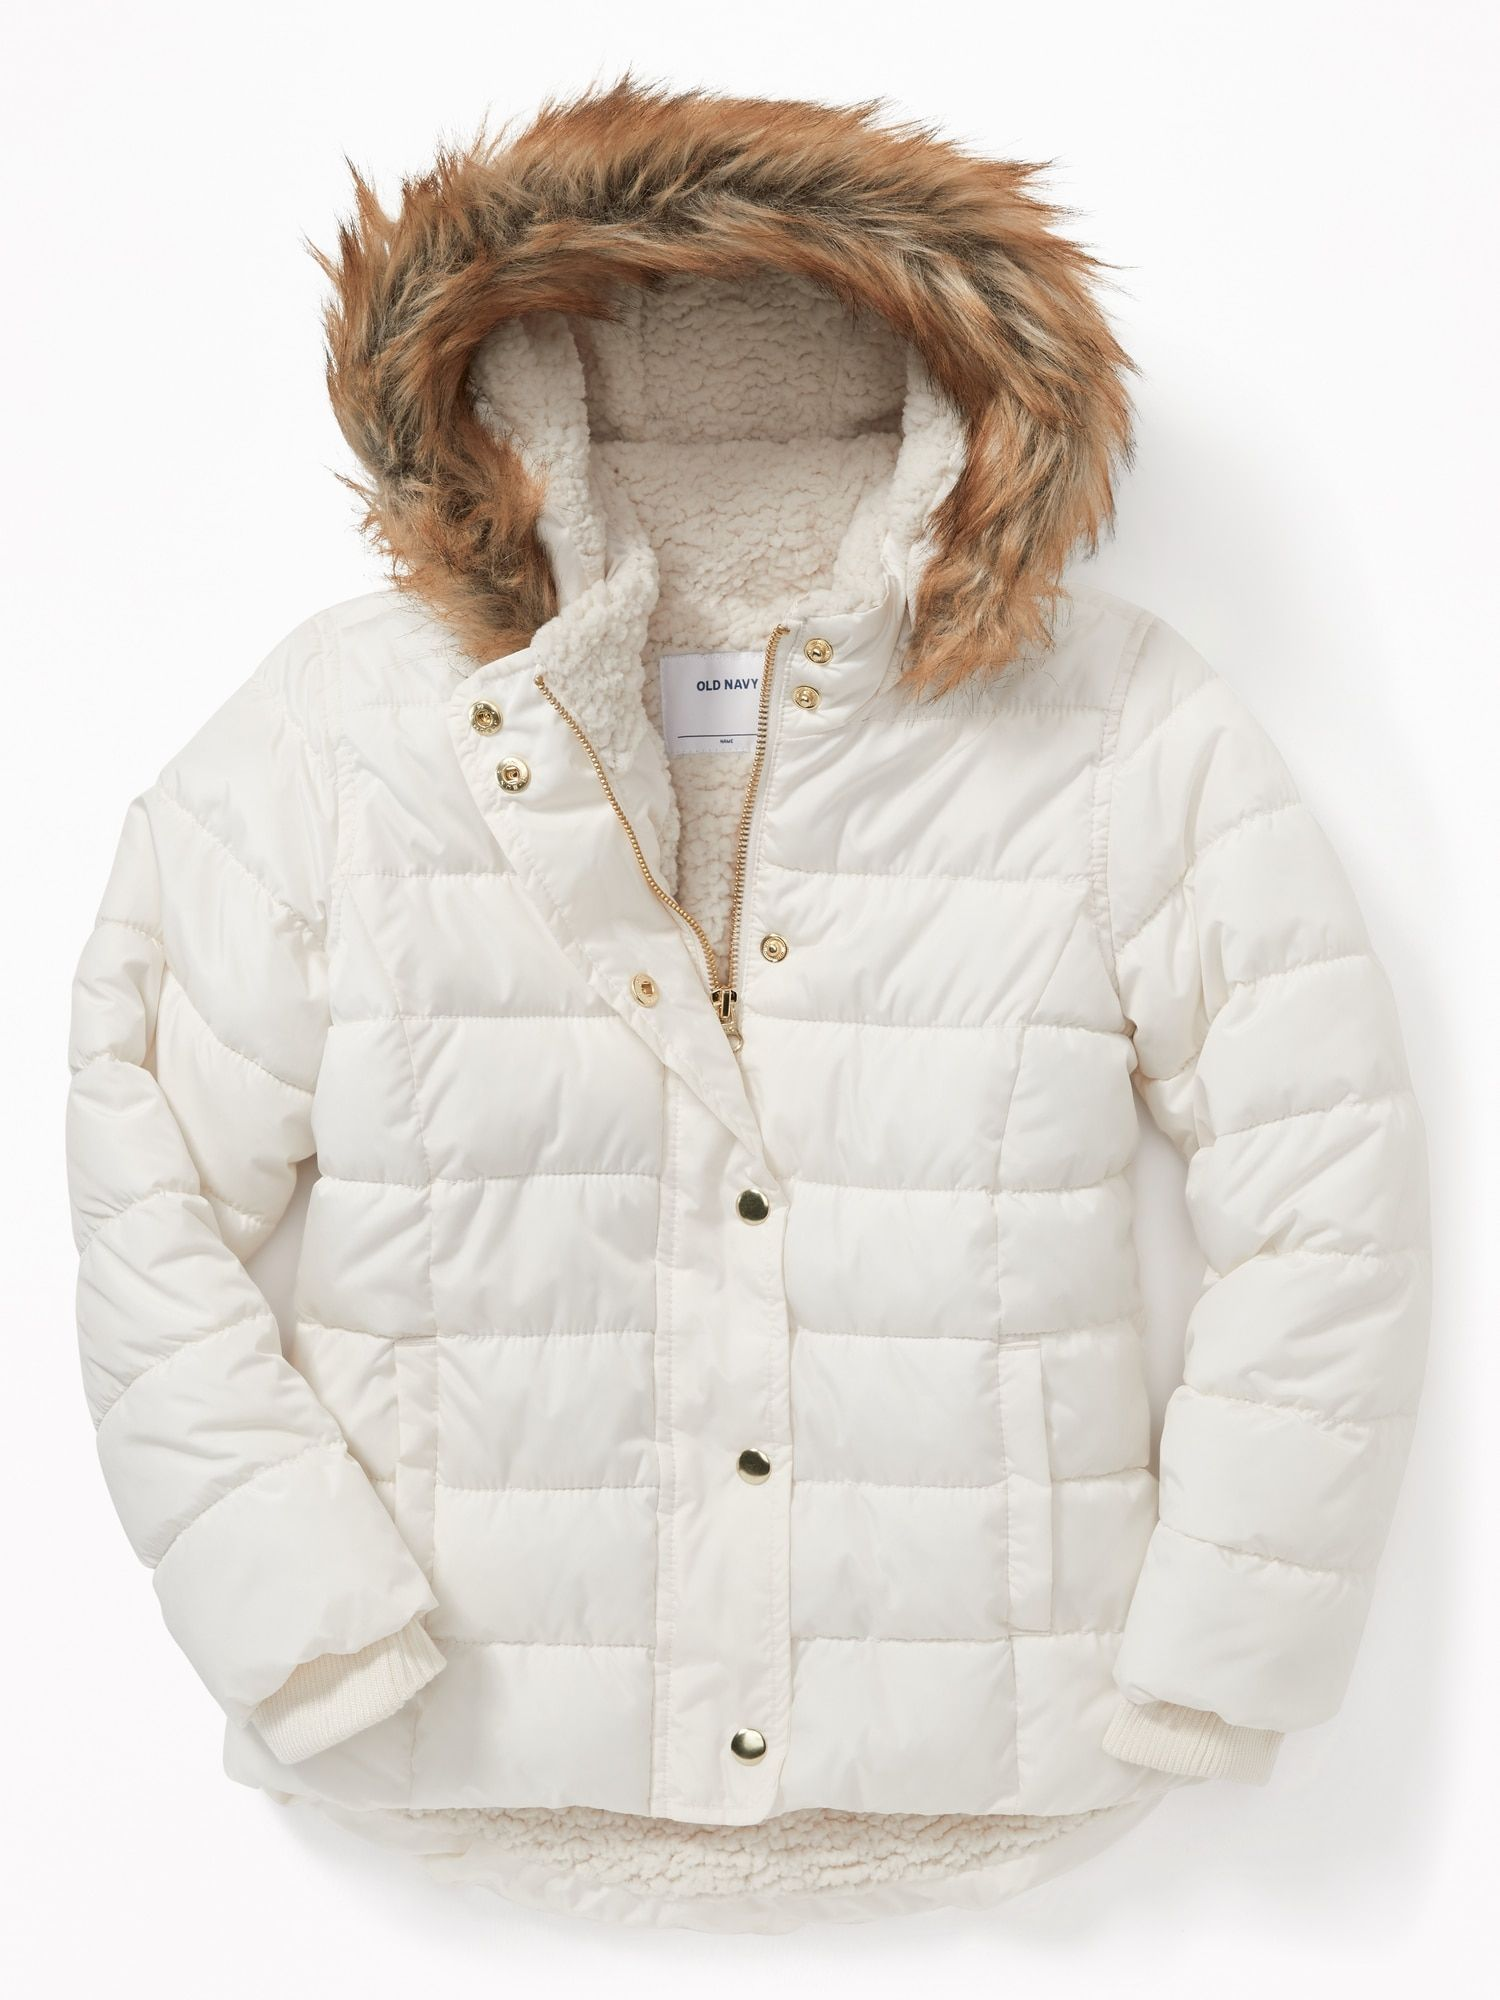 62b07a5d522e8 Girls Puffer Jacket | Faux Fur Hoodie | Old Navy | Fashion For Girls ...